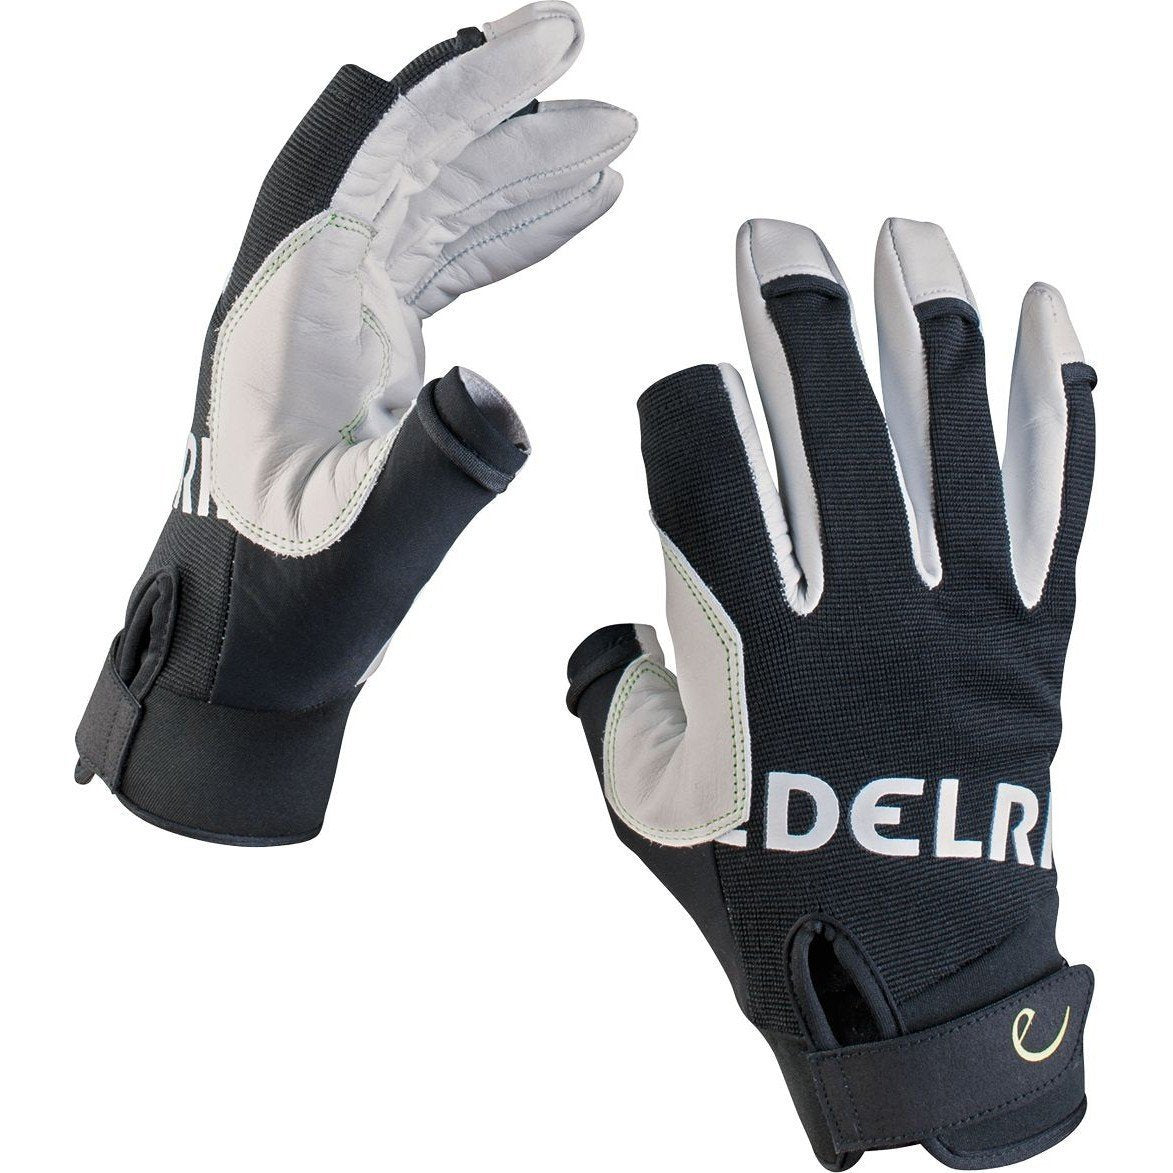 Edelrid Work Glove Closed, belay gloves shown on both hands in black and white colours